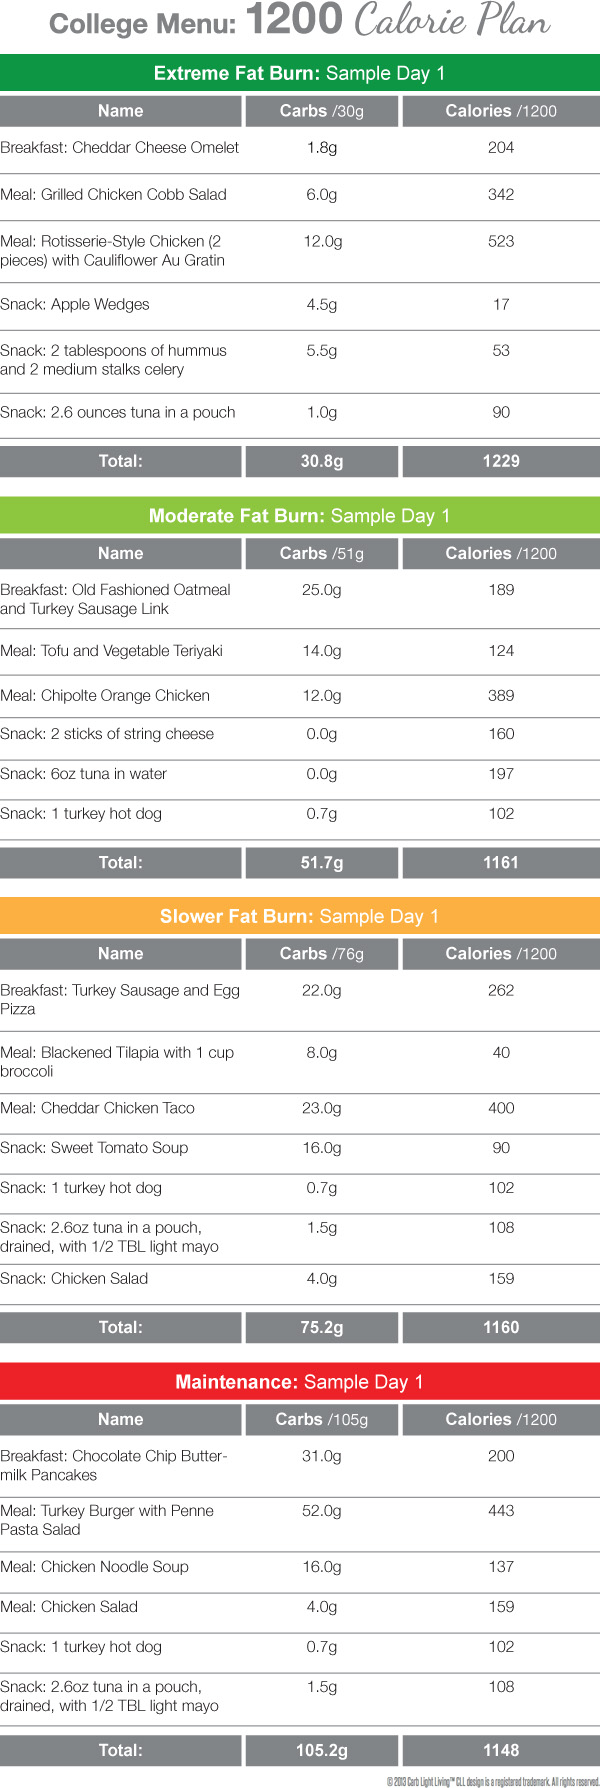 Sample menu for a 1200 calorie low-carb day on campus.